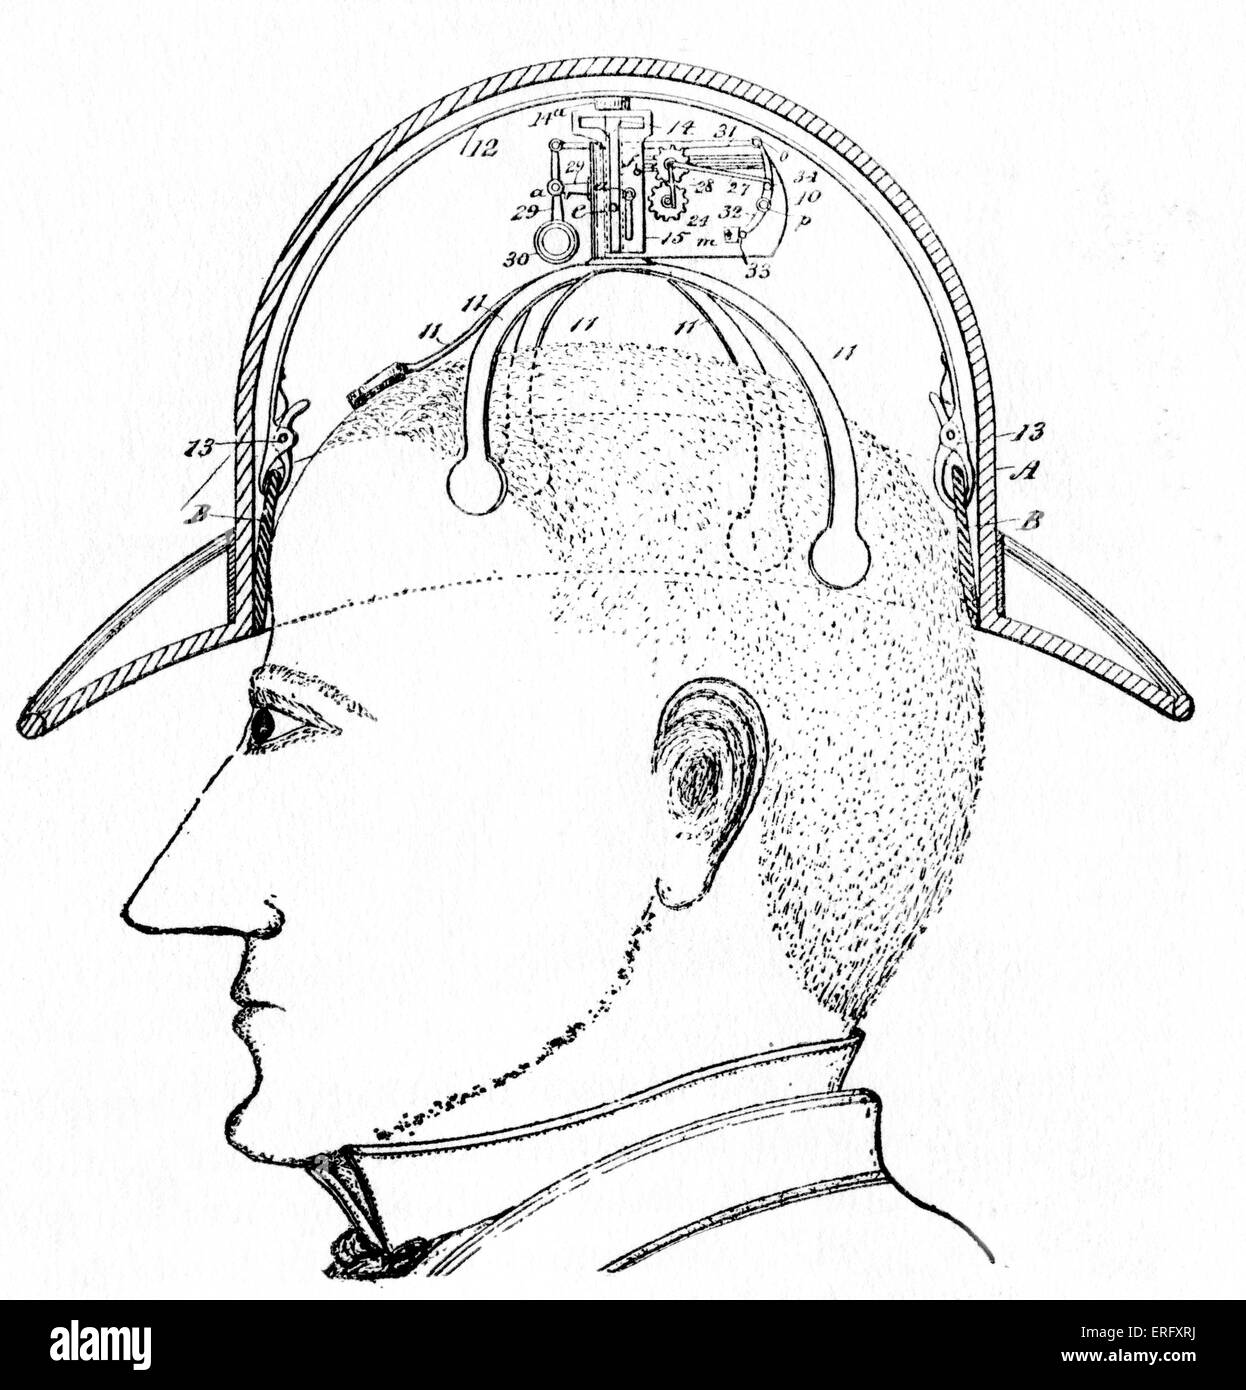 Nineteenth-century design for a commuter 's hat. The hat elevates and rotates on the head allowing the wearer - Stock Image